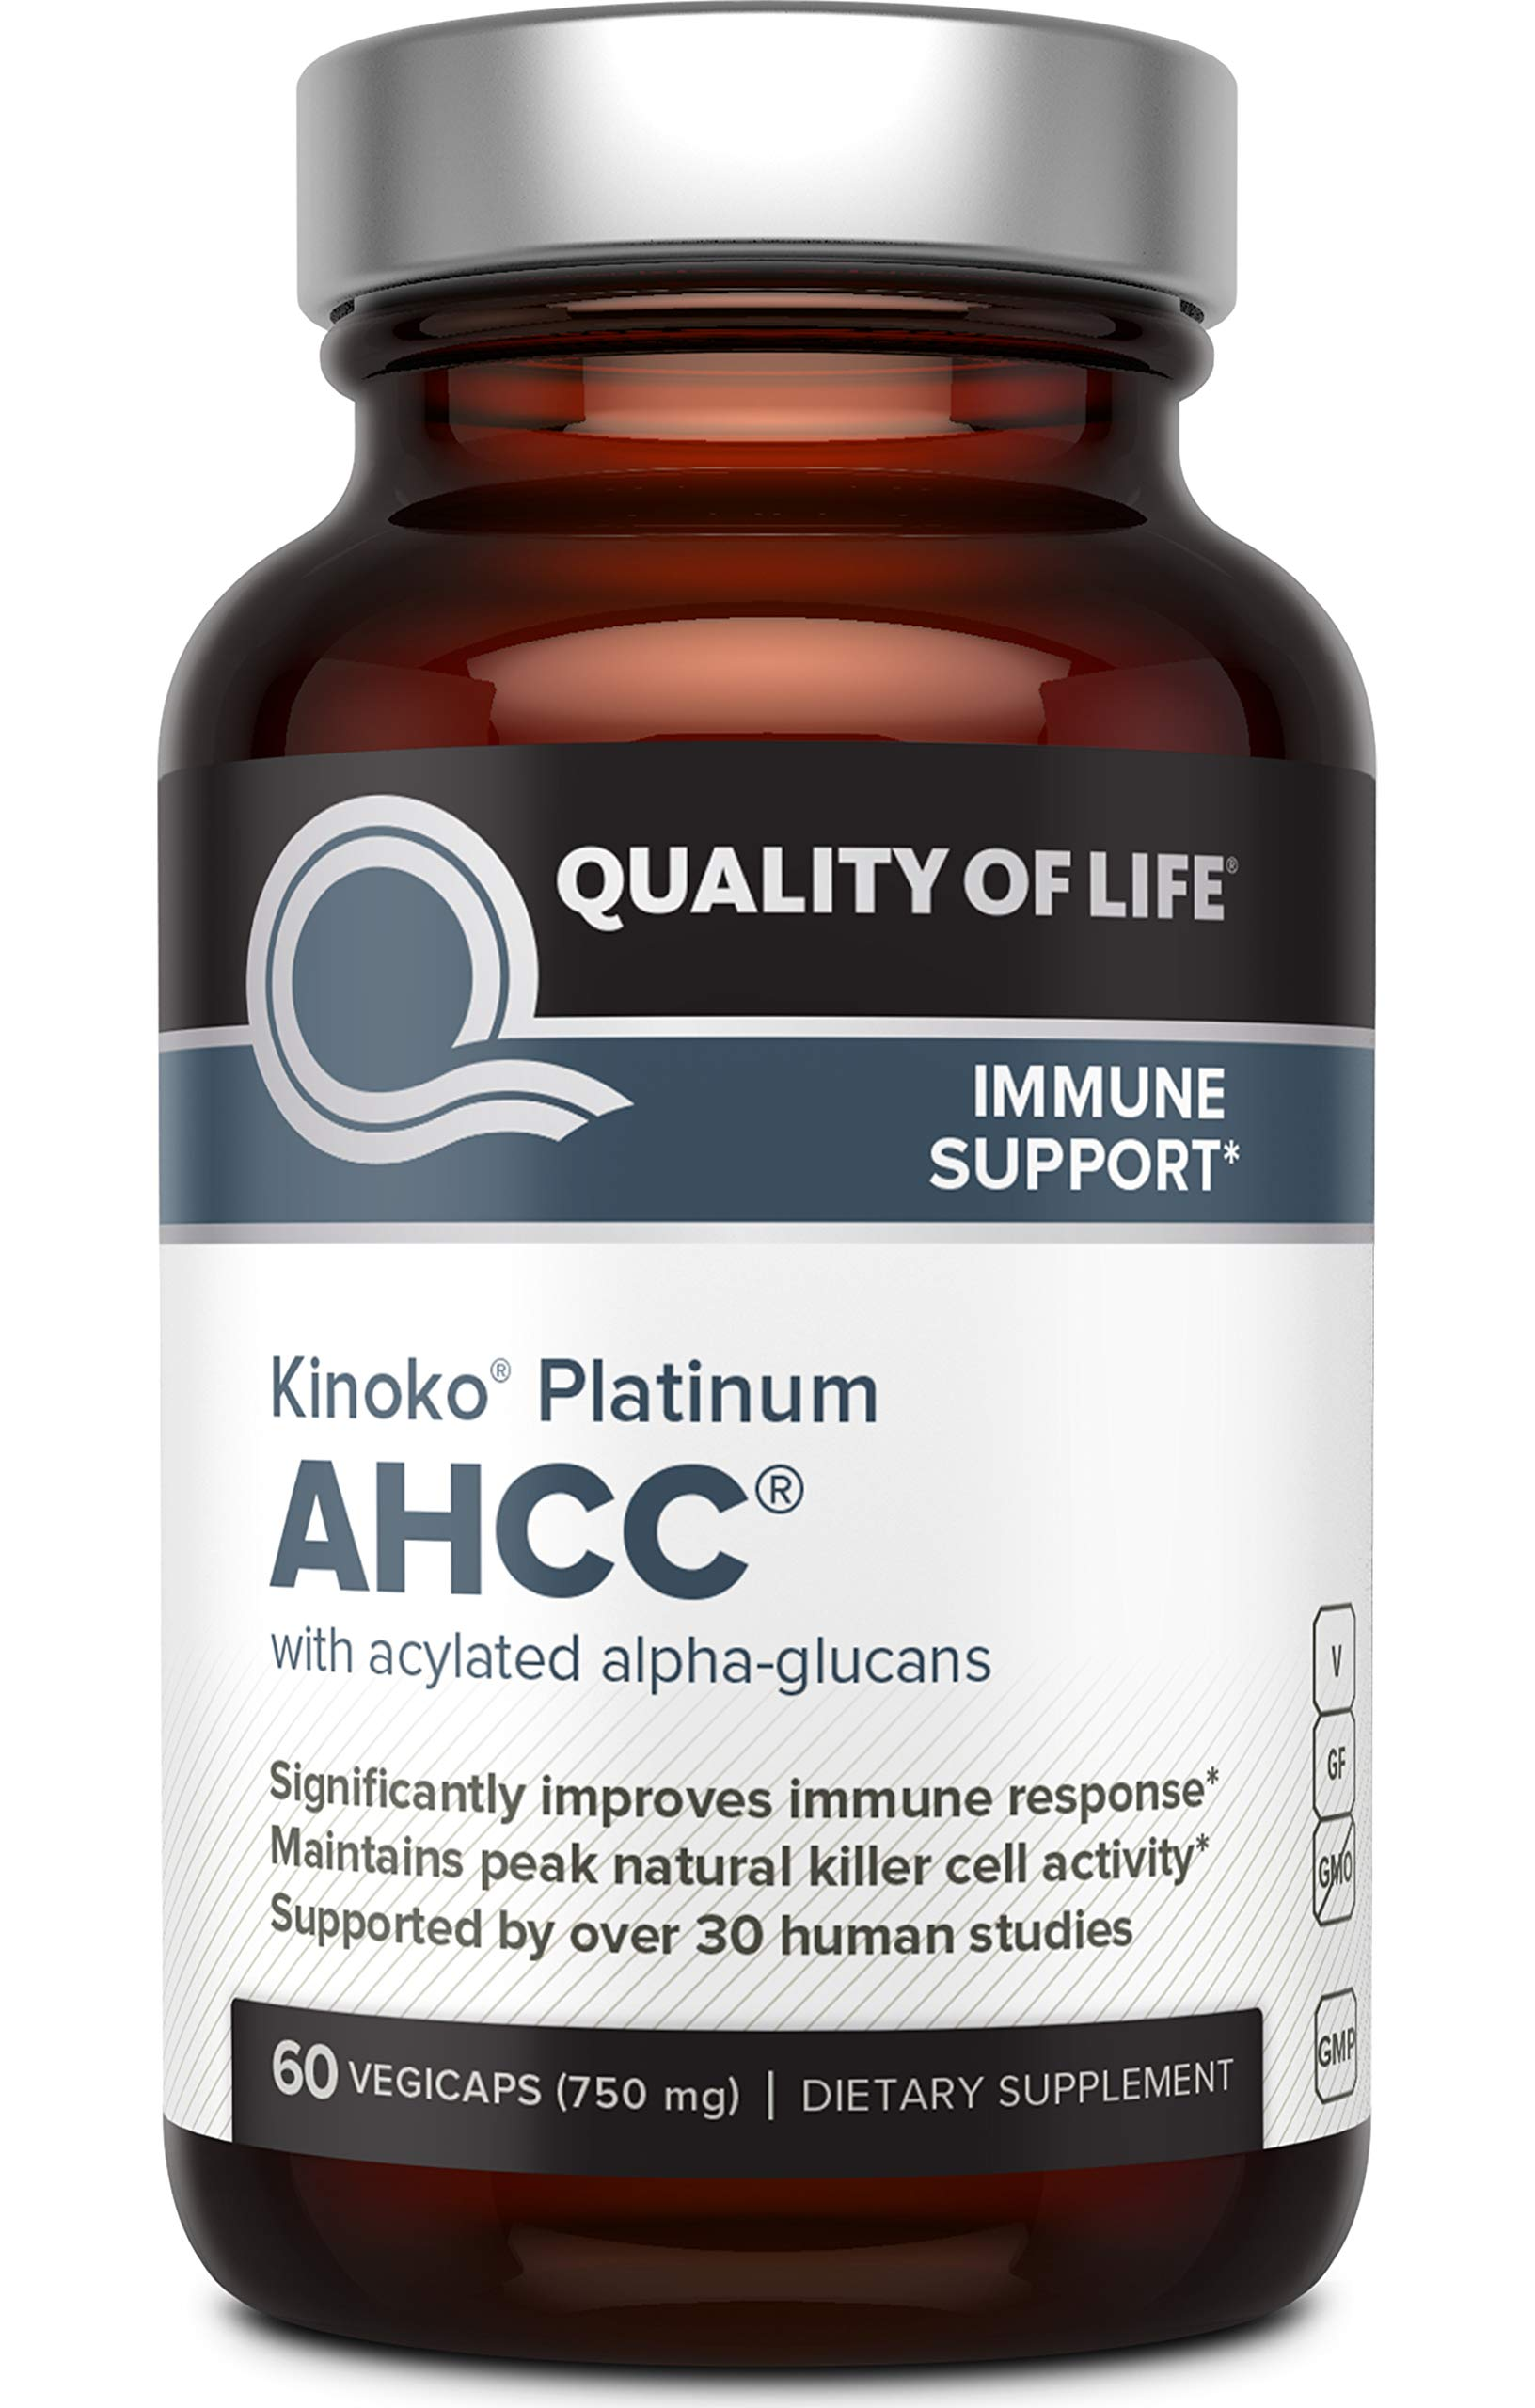 Premium Kinoko Platinum AHCC Supplement - 750mg of AHCC per Capsule - Supports Immune Health, Liver Function, Maintains Natural Killer Cell Activity - 60 Veggie Capsules by Quality of Life